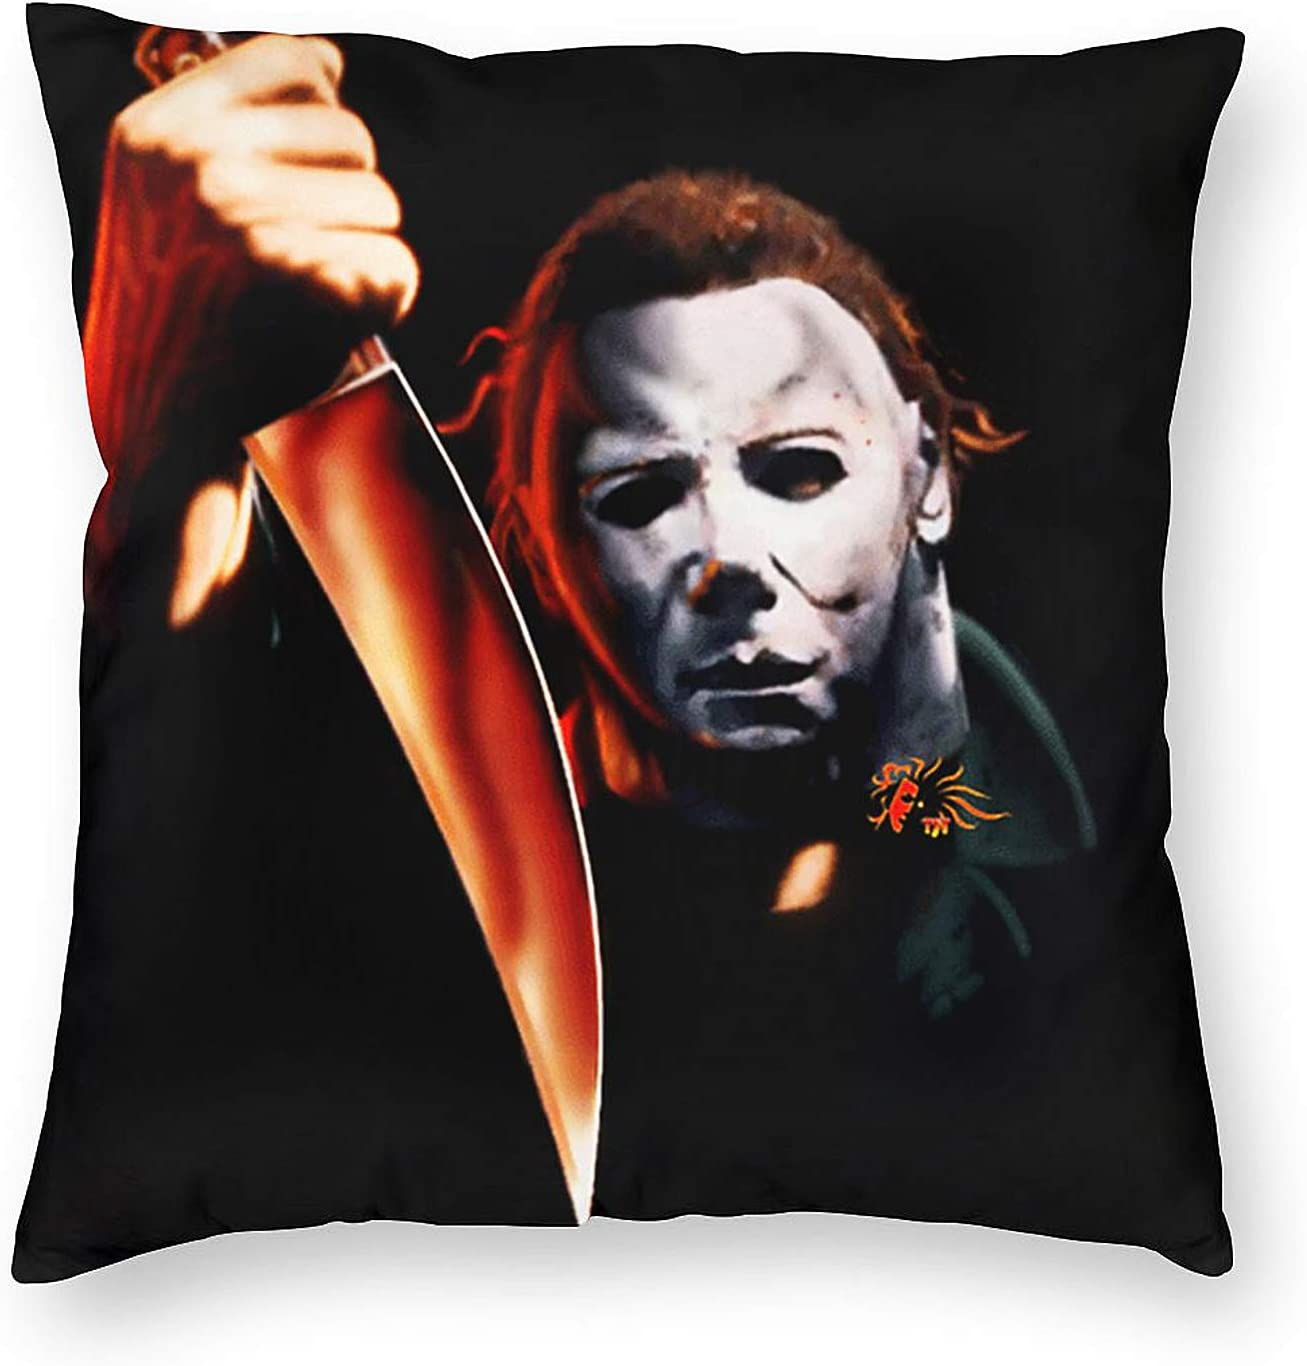 Moc.Deamiarr Michael Myers Halloween Decorations Throw Pillow Covers Cushion Cases for Couch Sofa Bed Living Room Decor 18 X 18 Inch